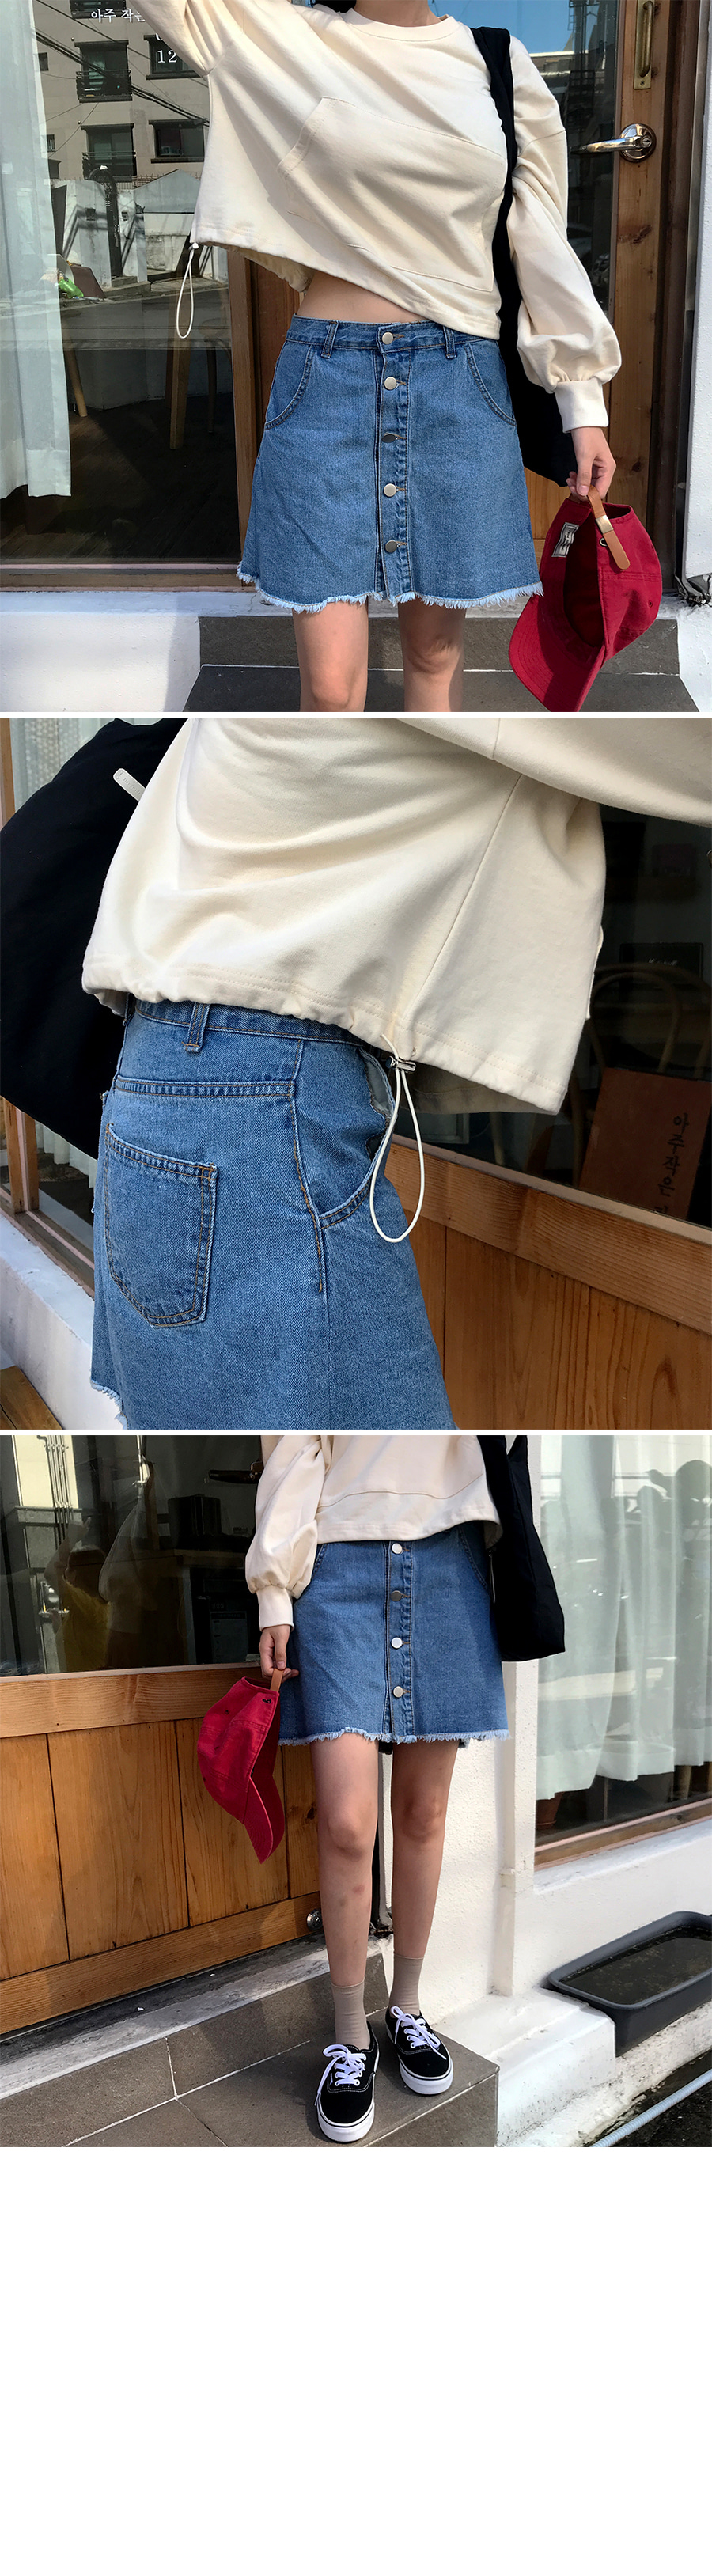 Sawing button skirt